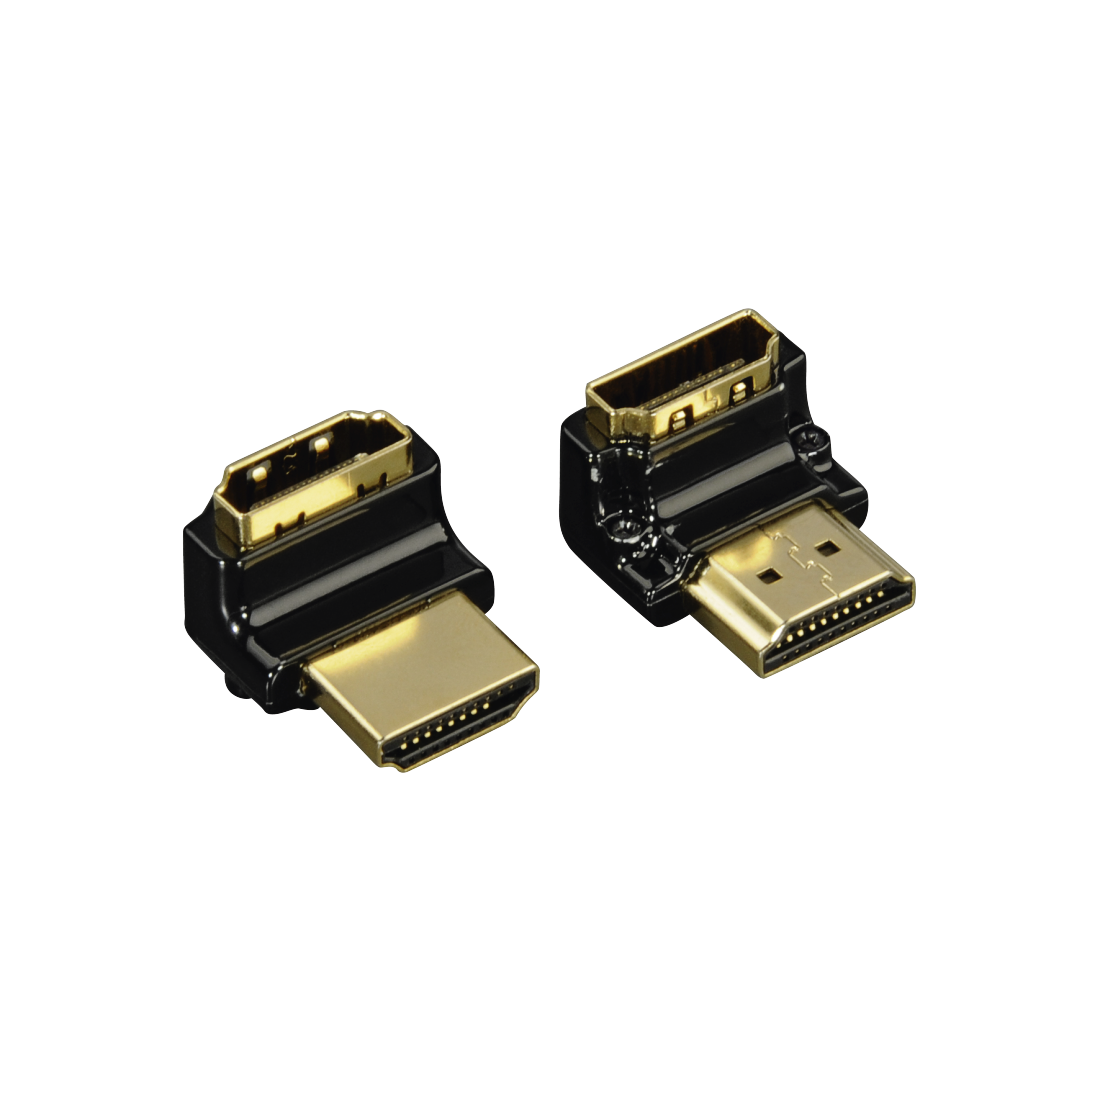 abx High-Res Image - Avinity, High Speed HDMI™ Angle Adapter Kit 90°